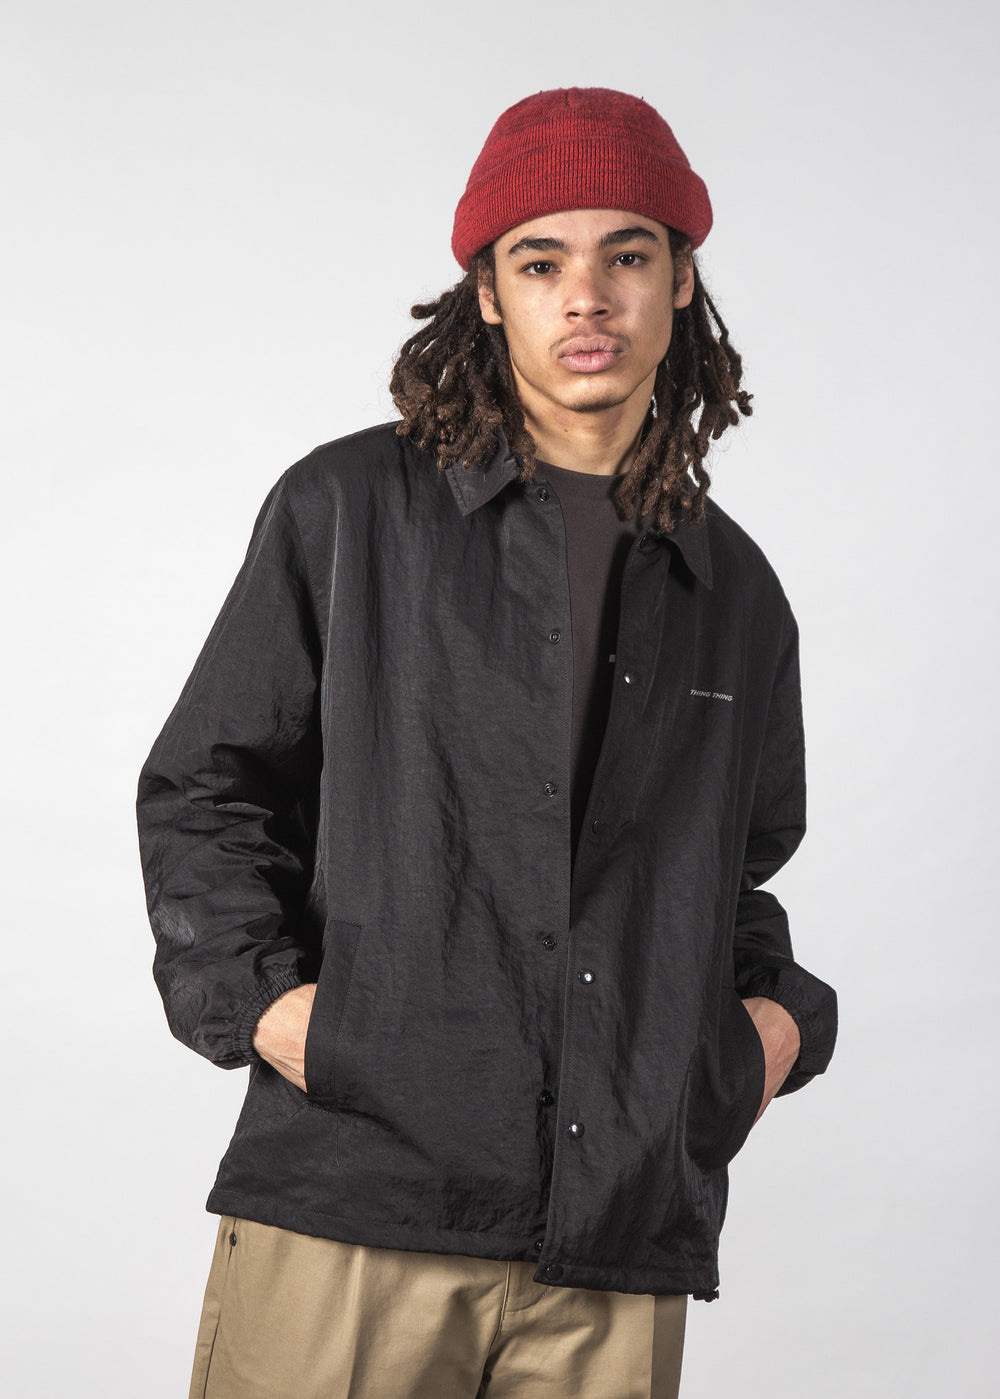 STATE COACH JACKET BLACK